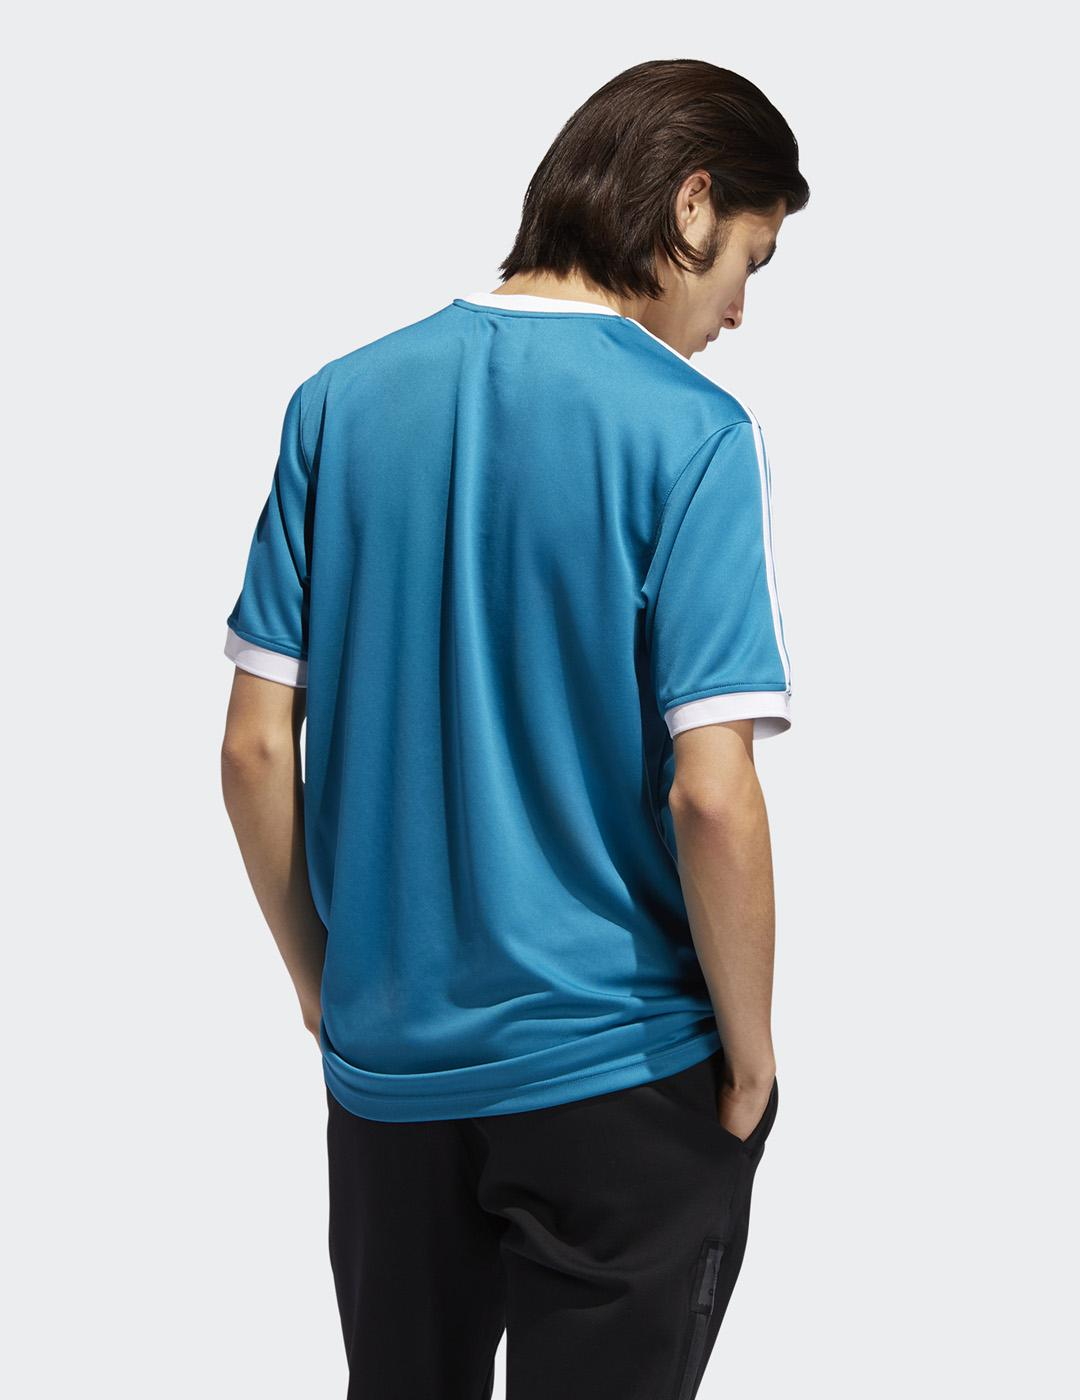 Camiseta Adidas CLUB JERSEY - Active Teal White